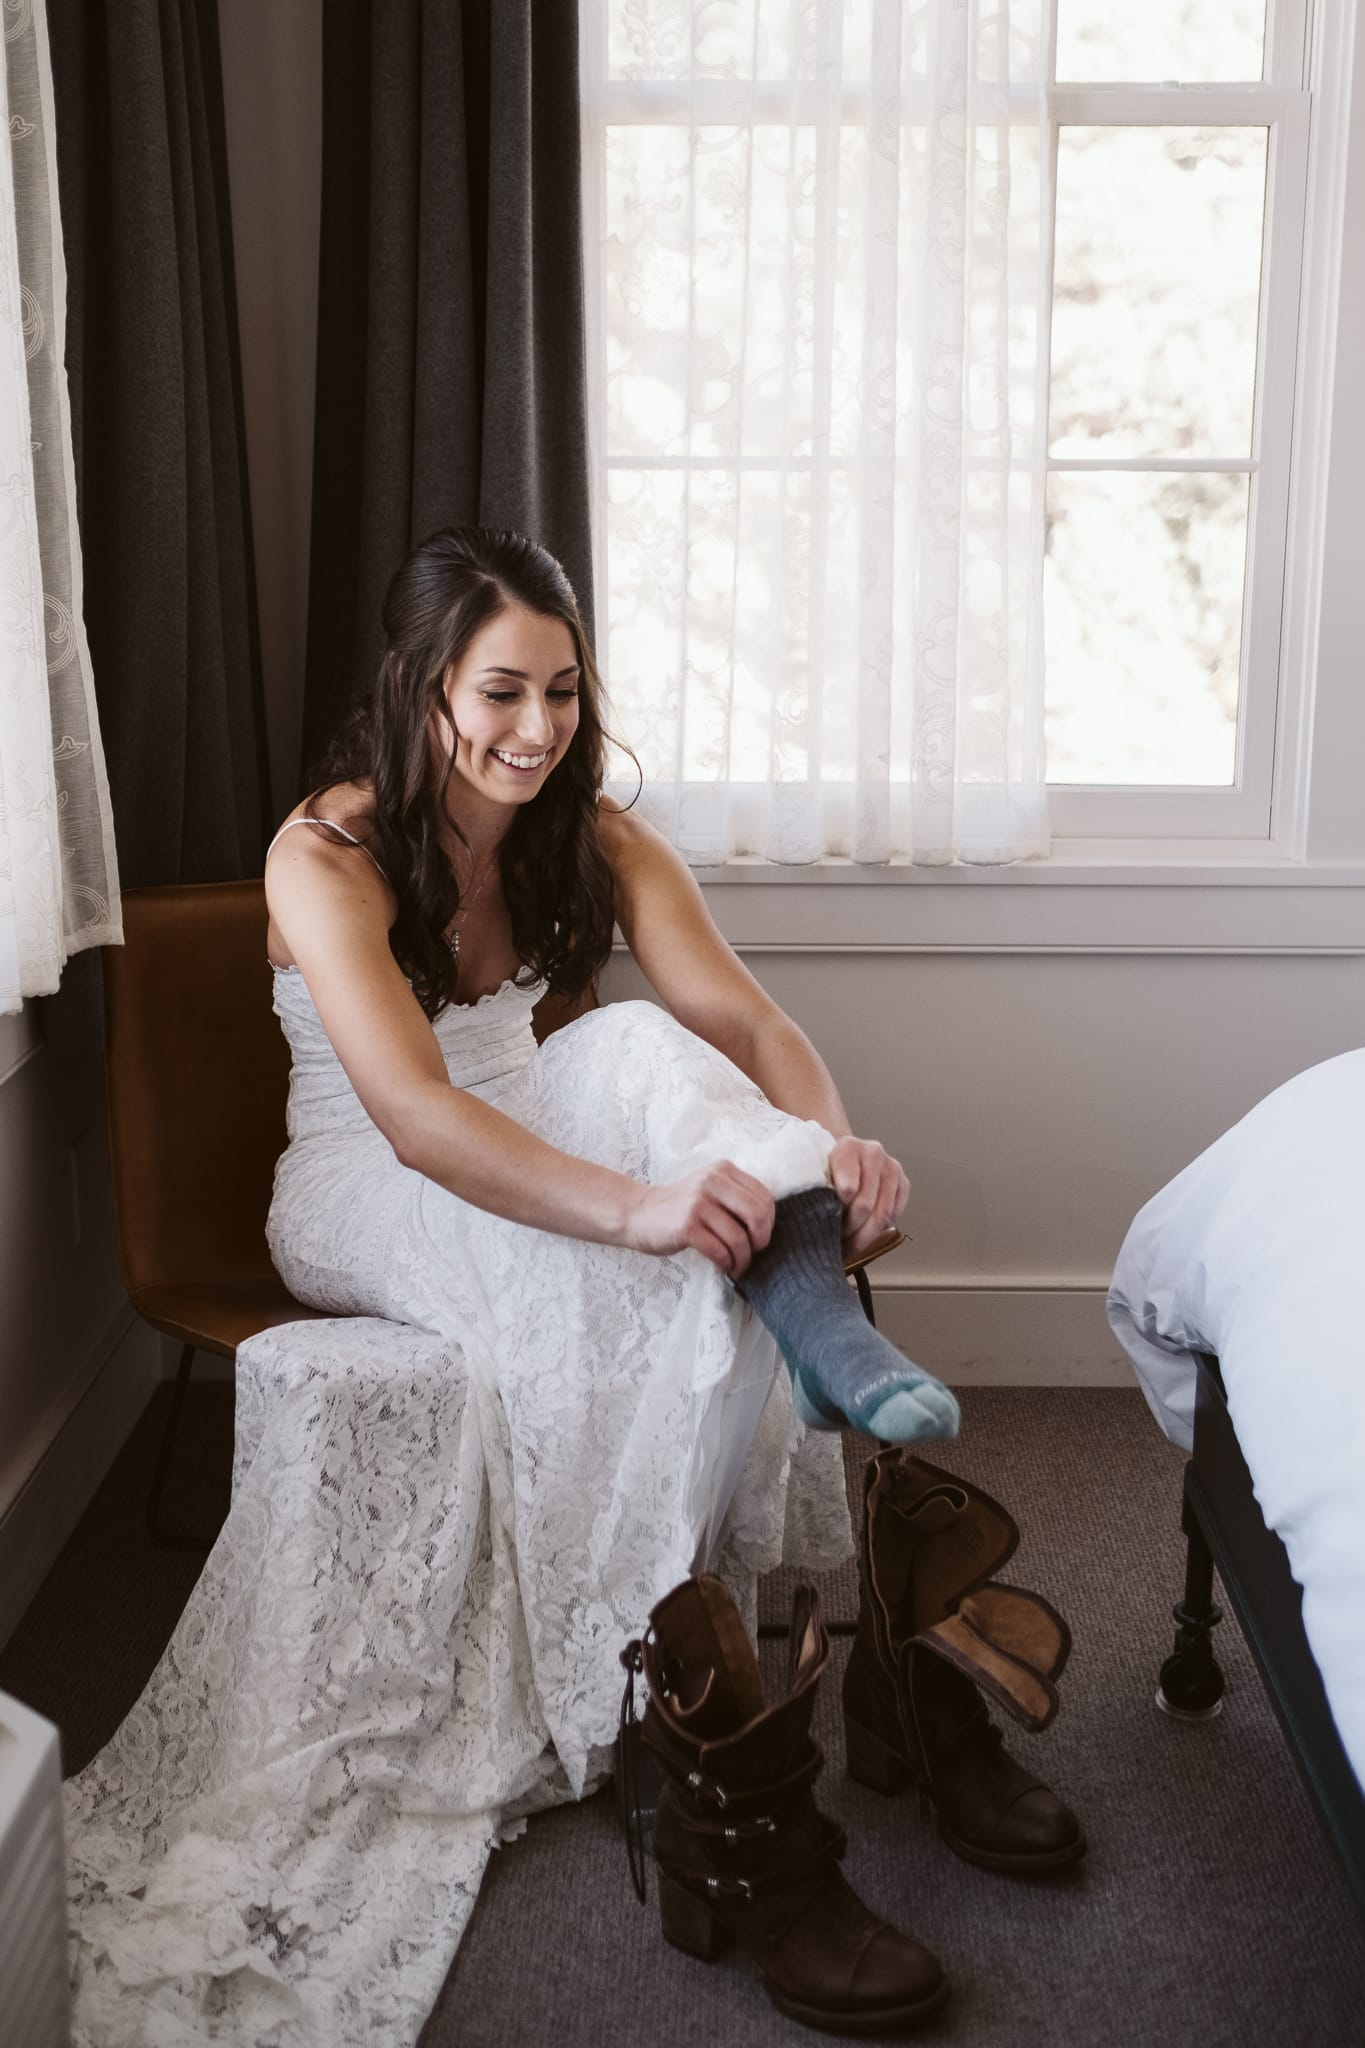 Bride putting on Darn Tough socks for her elopement